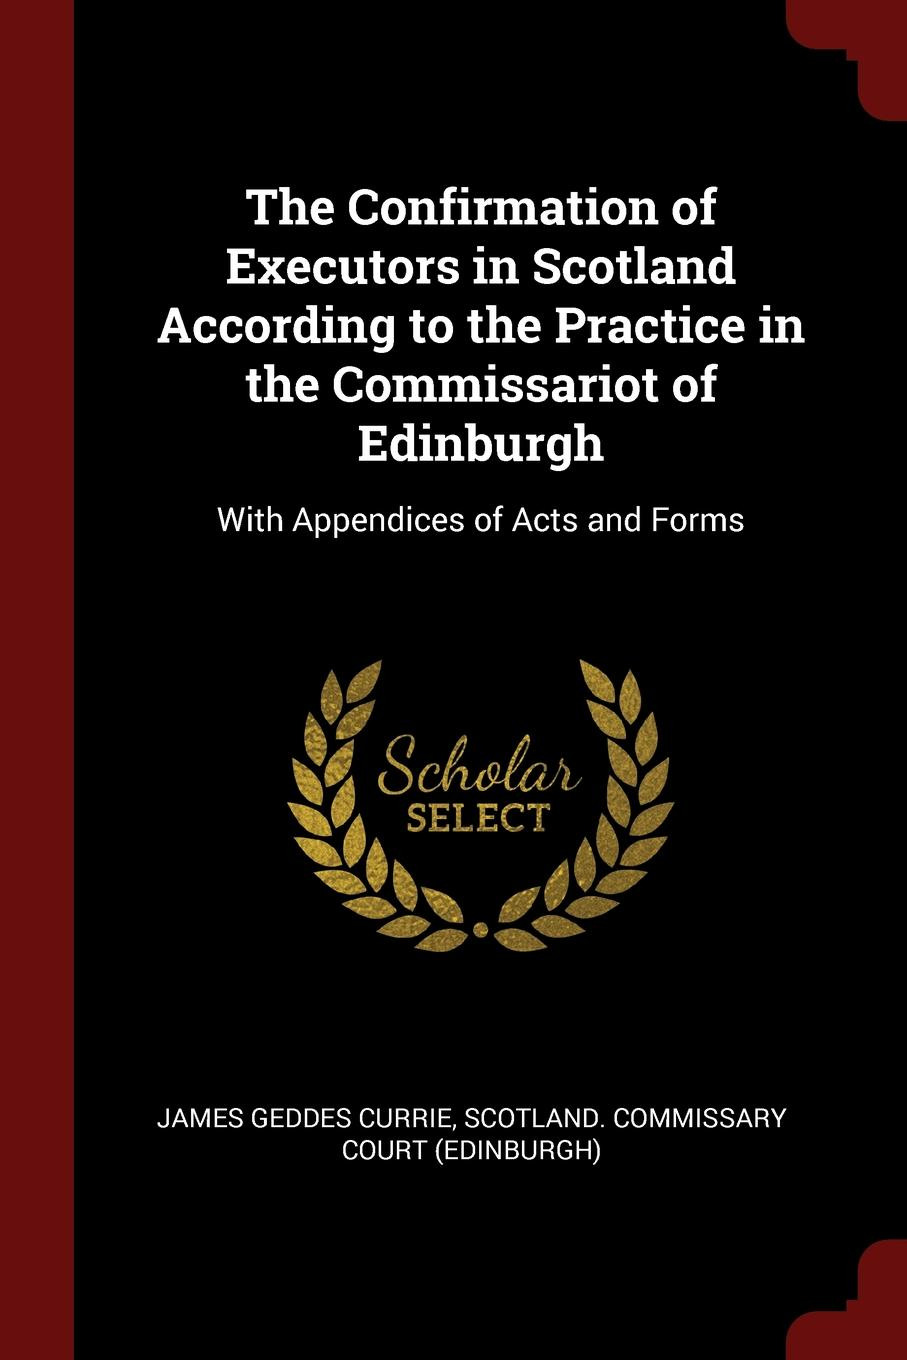 James Geddes Currie The Confirmation of Executors in Scotland According to the Practice Commissariot Edinburgh. With Appendices Acts and Forms